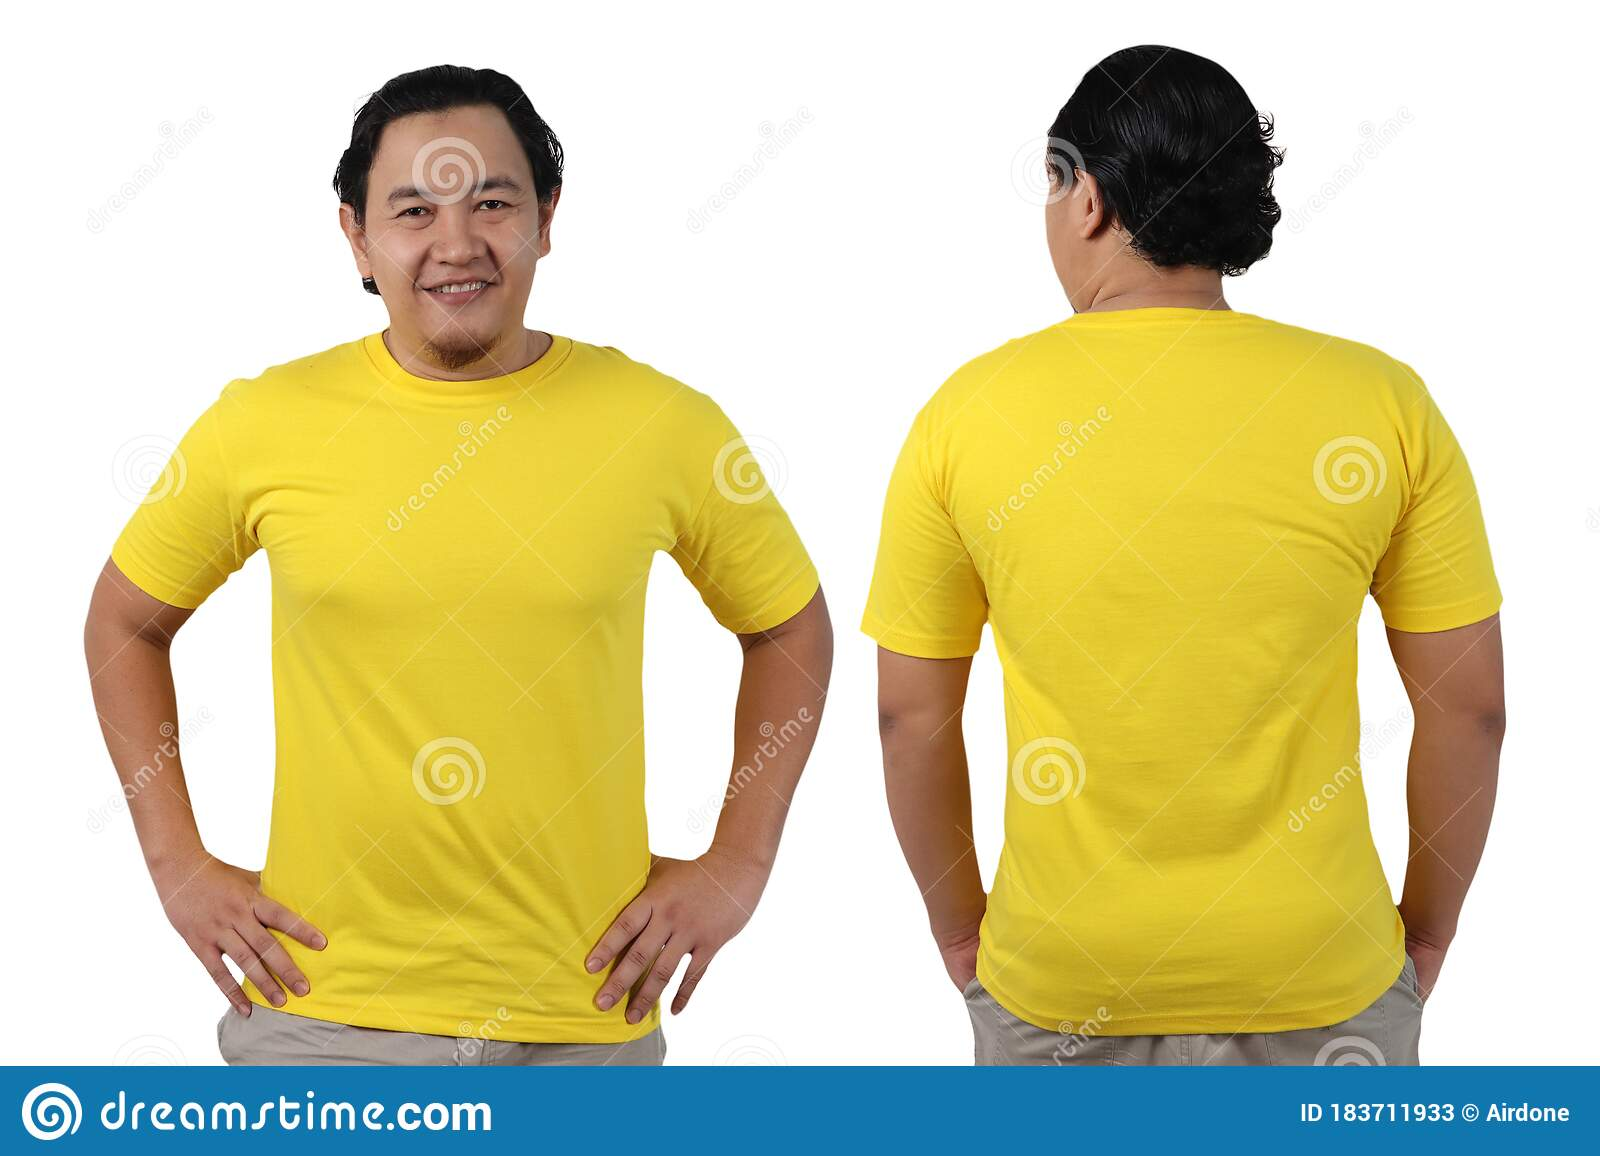 Download 188 Tshirt Front Back Yellow Photos Free Royalty Free Stock Photos From Dreamstime Yellowimages Mockups